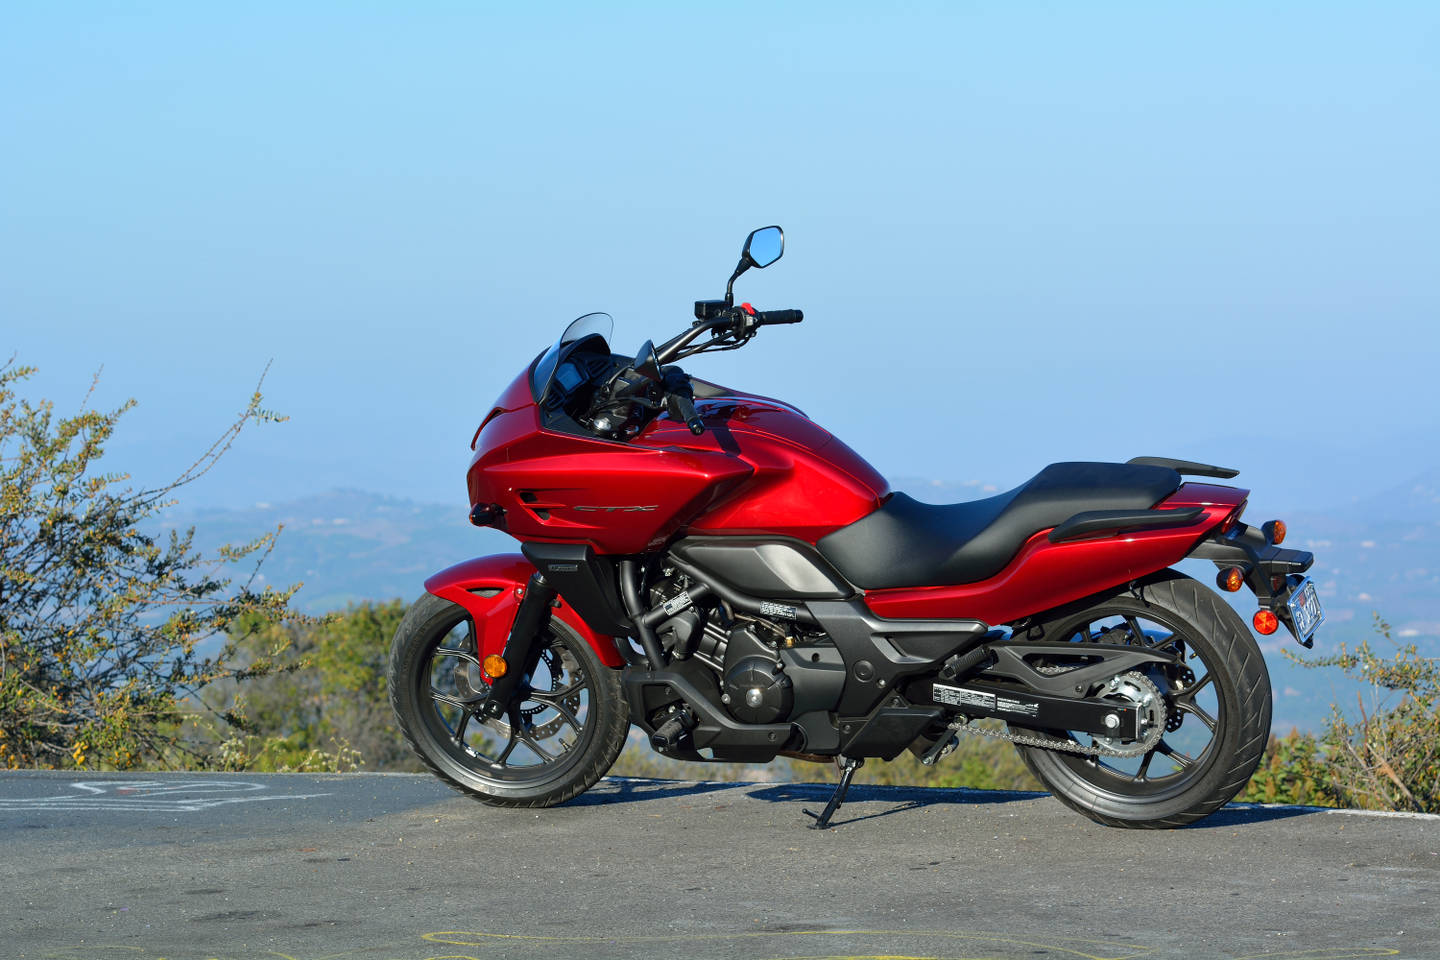 specifications regarding the 2014 honda ctx700 dct abs visit honda s web site strong